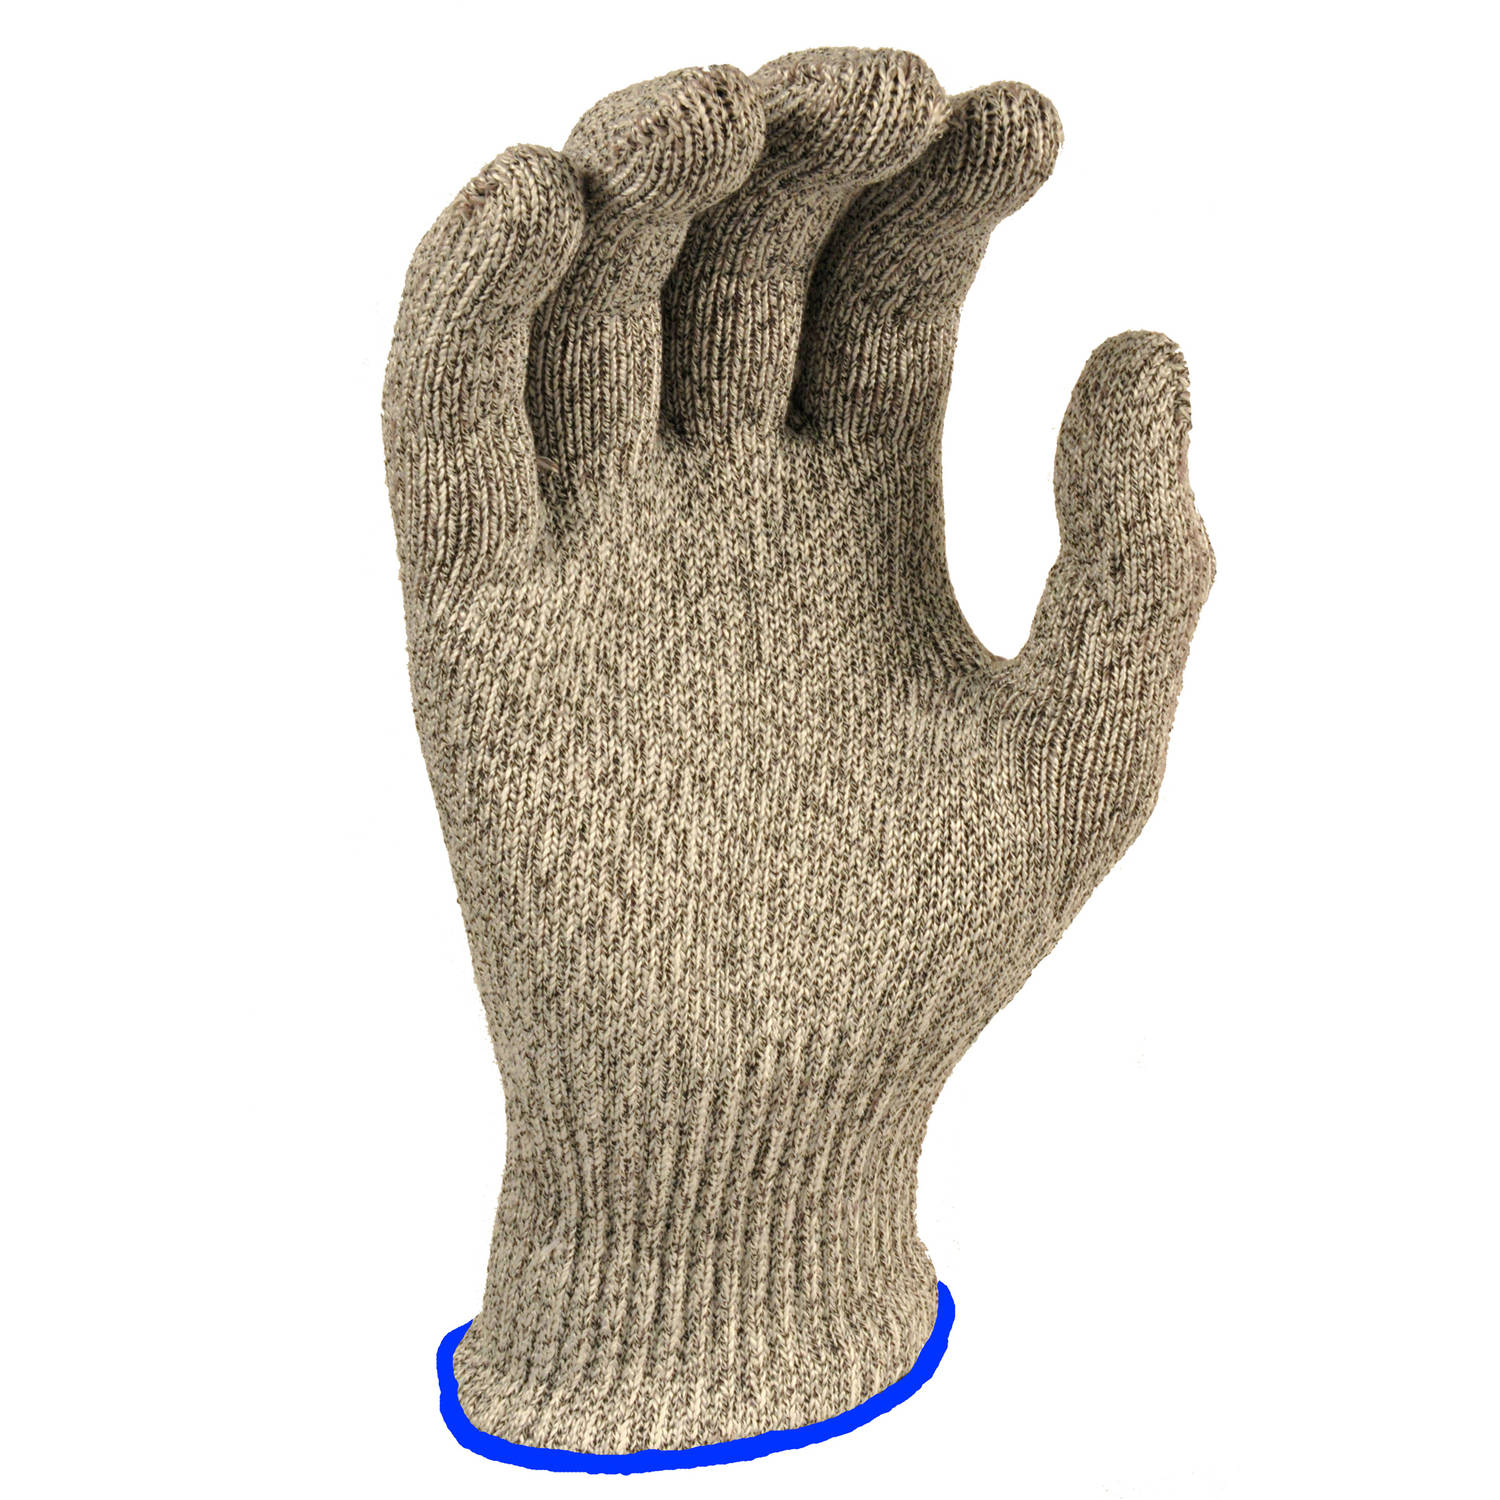 G & F CUTShield Classic Kitchen Cut-Resistant Gloves, Food Contact Safe, Gray, Medium